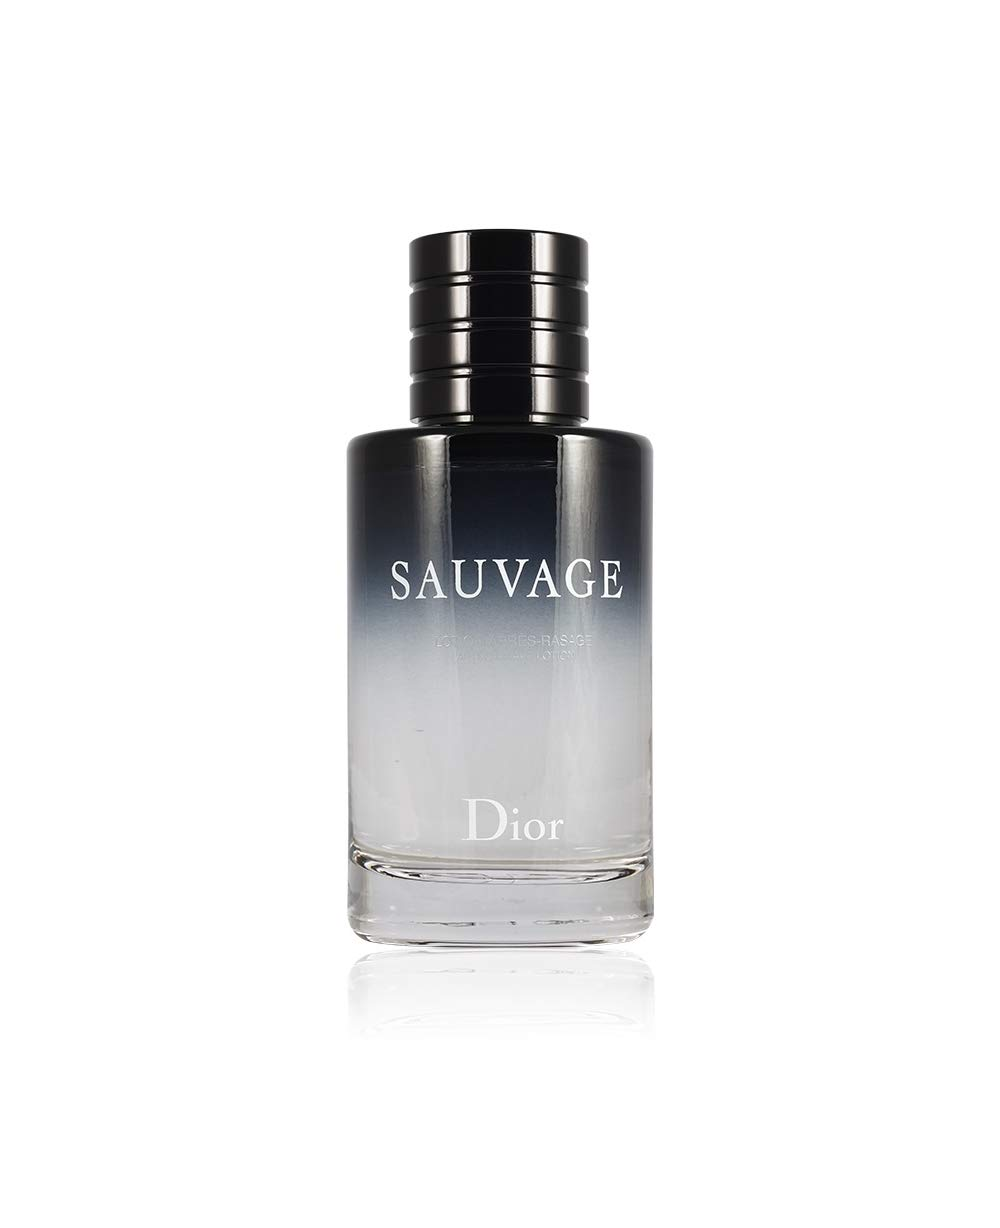 488b0025 Amazon.com: Christian Dior Sauvage After Shave Balm for Men, 3.4 ...